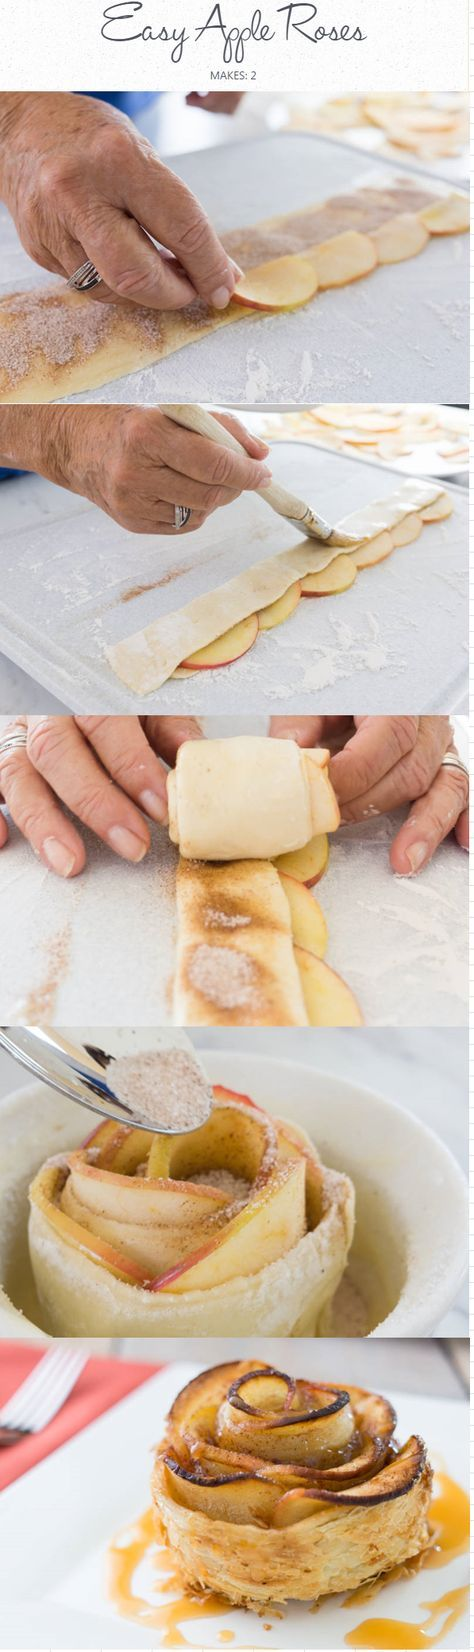 Easy Apple Roses I A fun alternative to traditional apple pie.